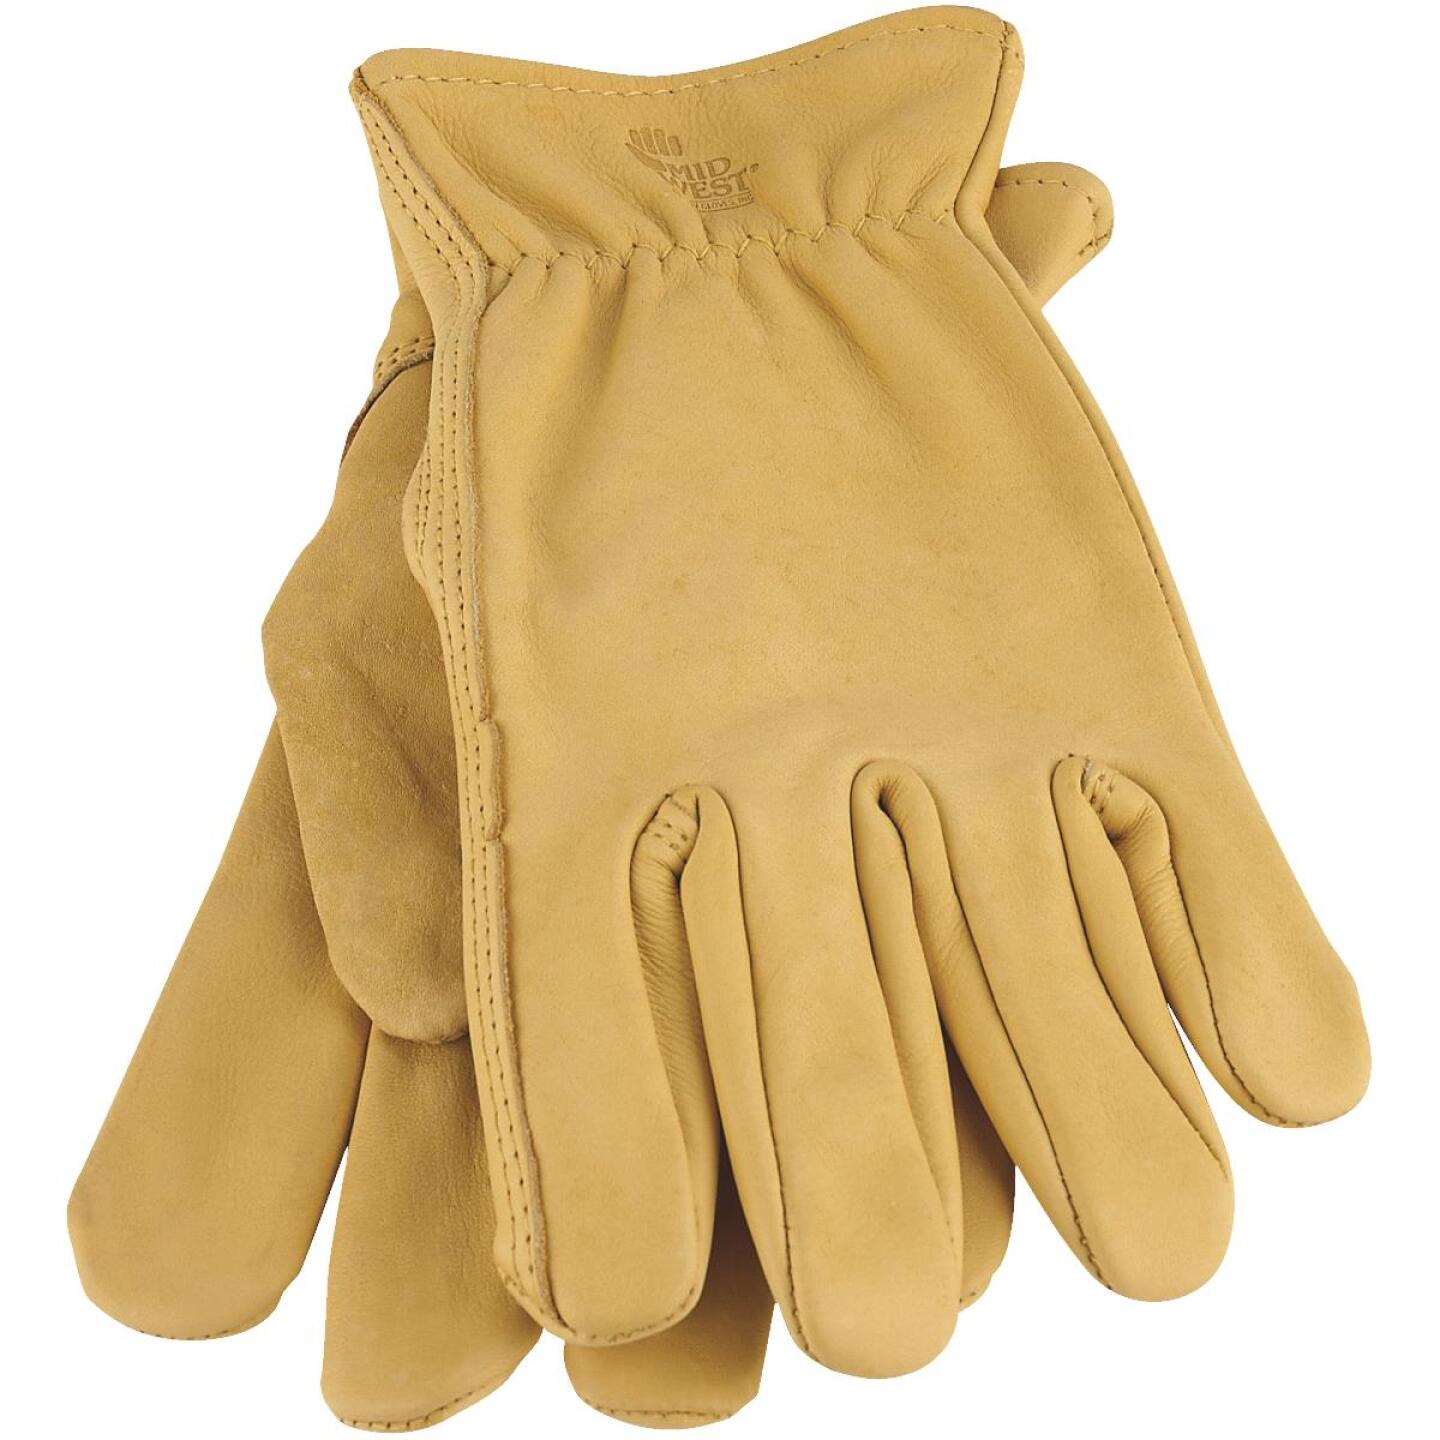 Midwest Gear Men's XL Smooth Grain Leather Work Glove Image 1